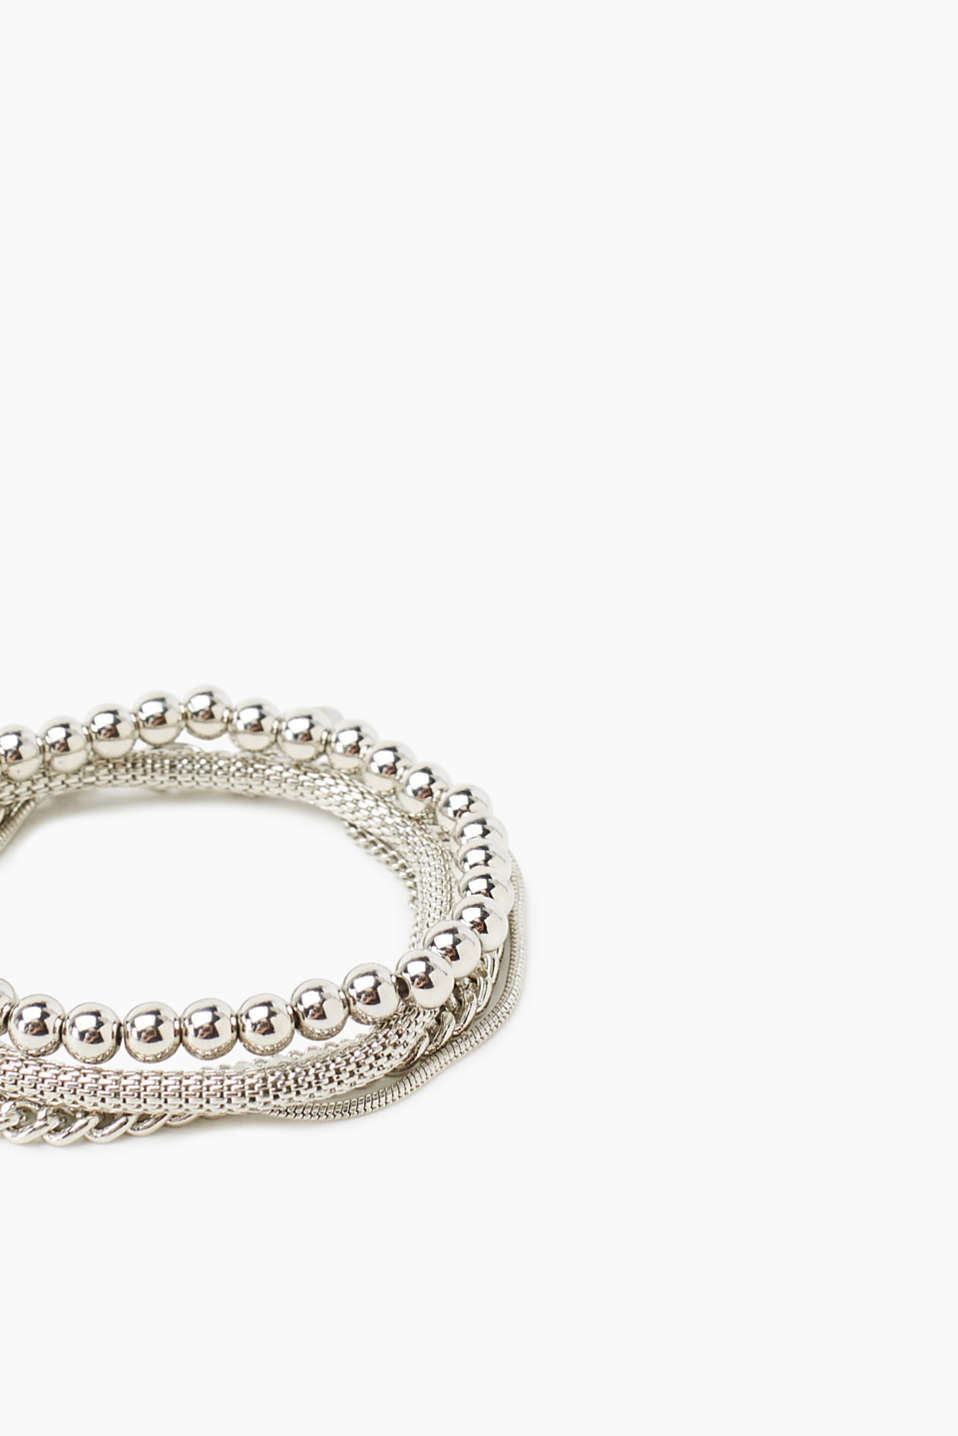 Set of three bracelets in a silver tone